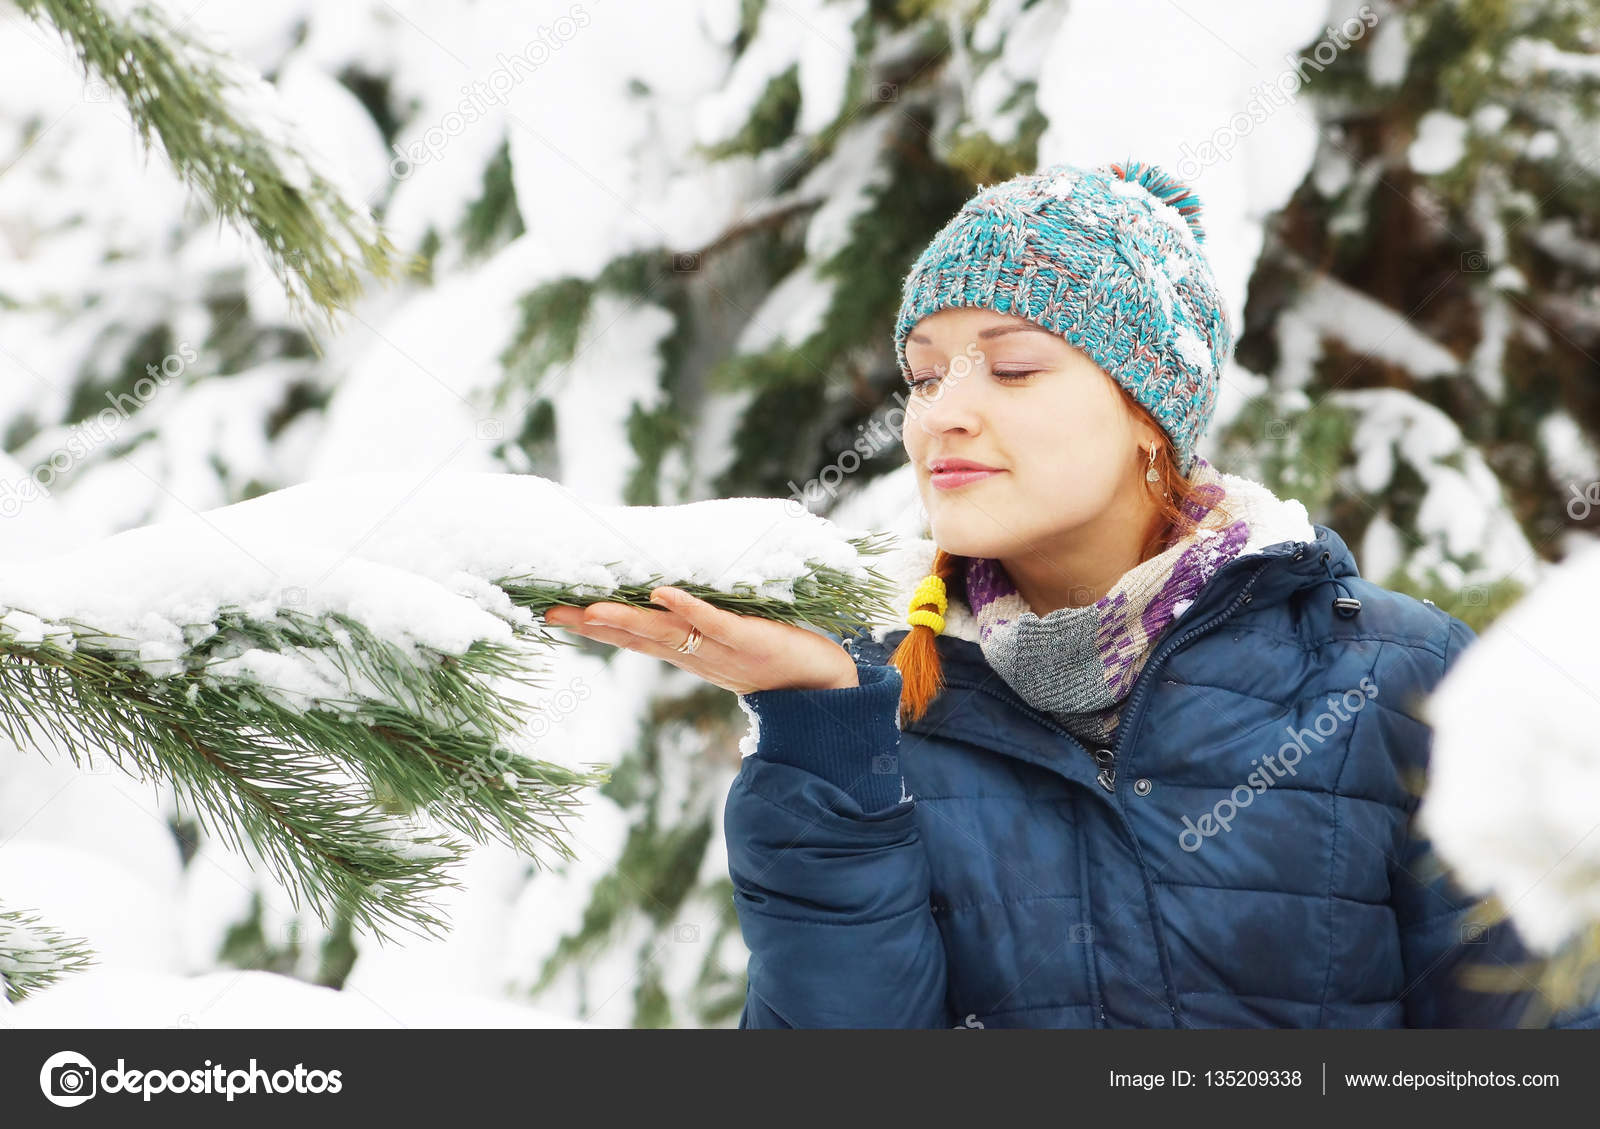 Happy beautiful girl wearing blue jacket stands next to snowy pine